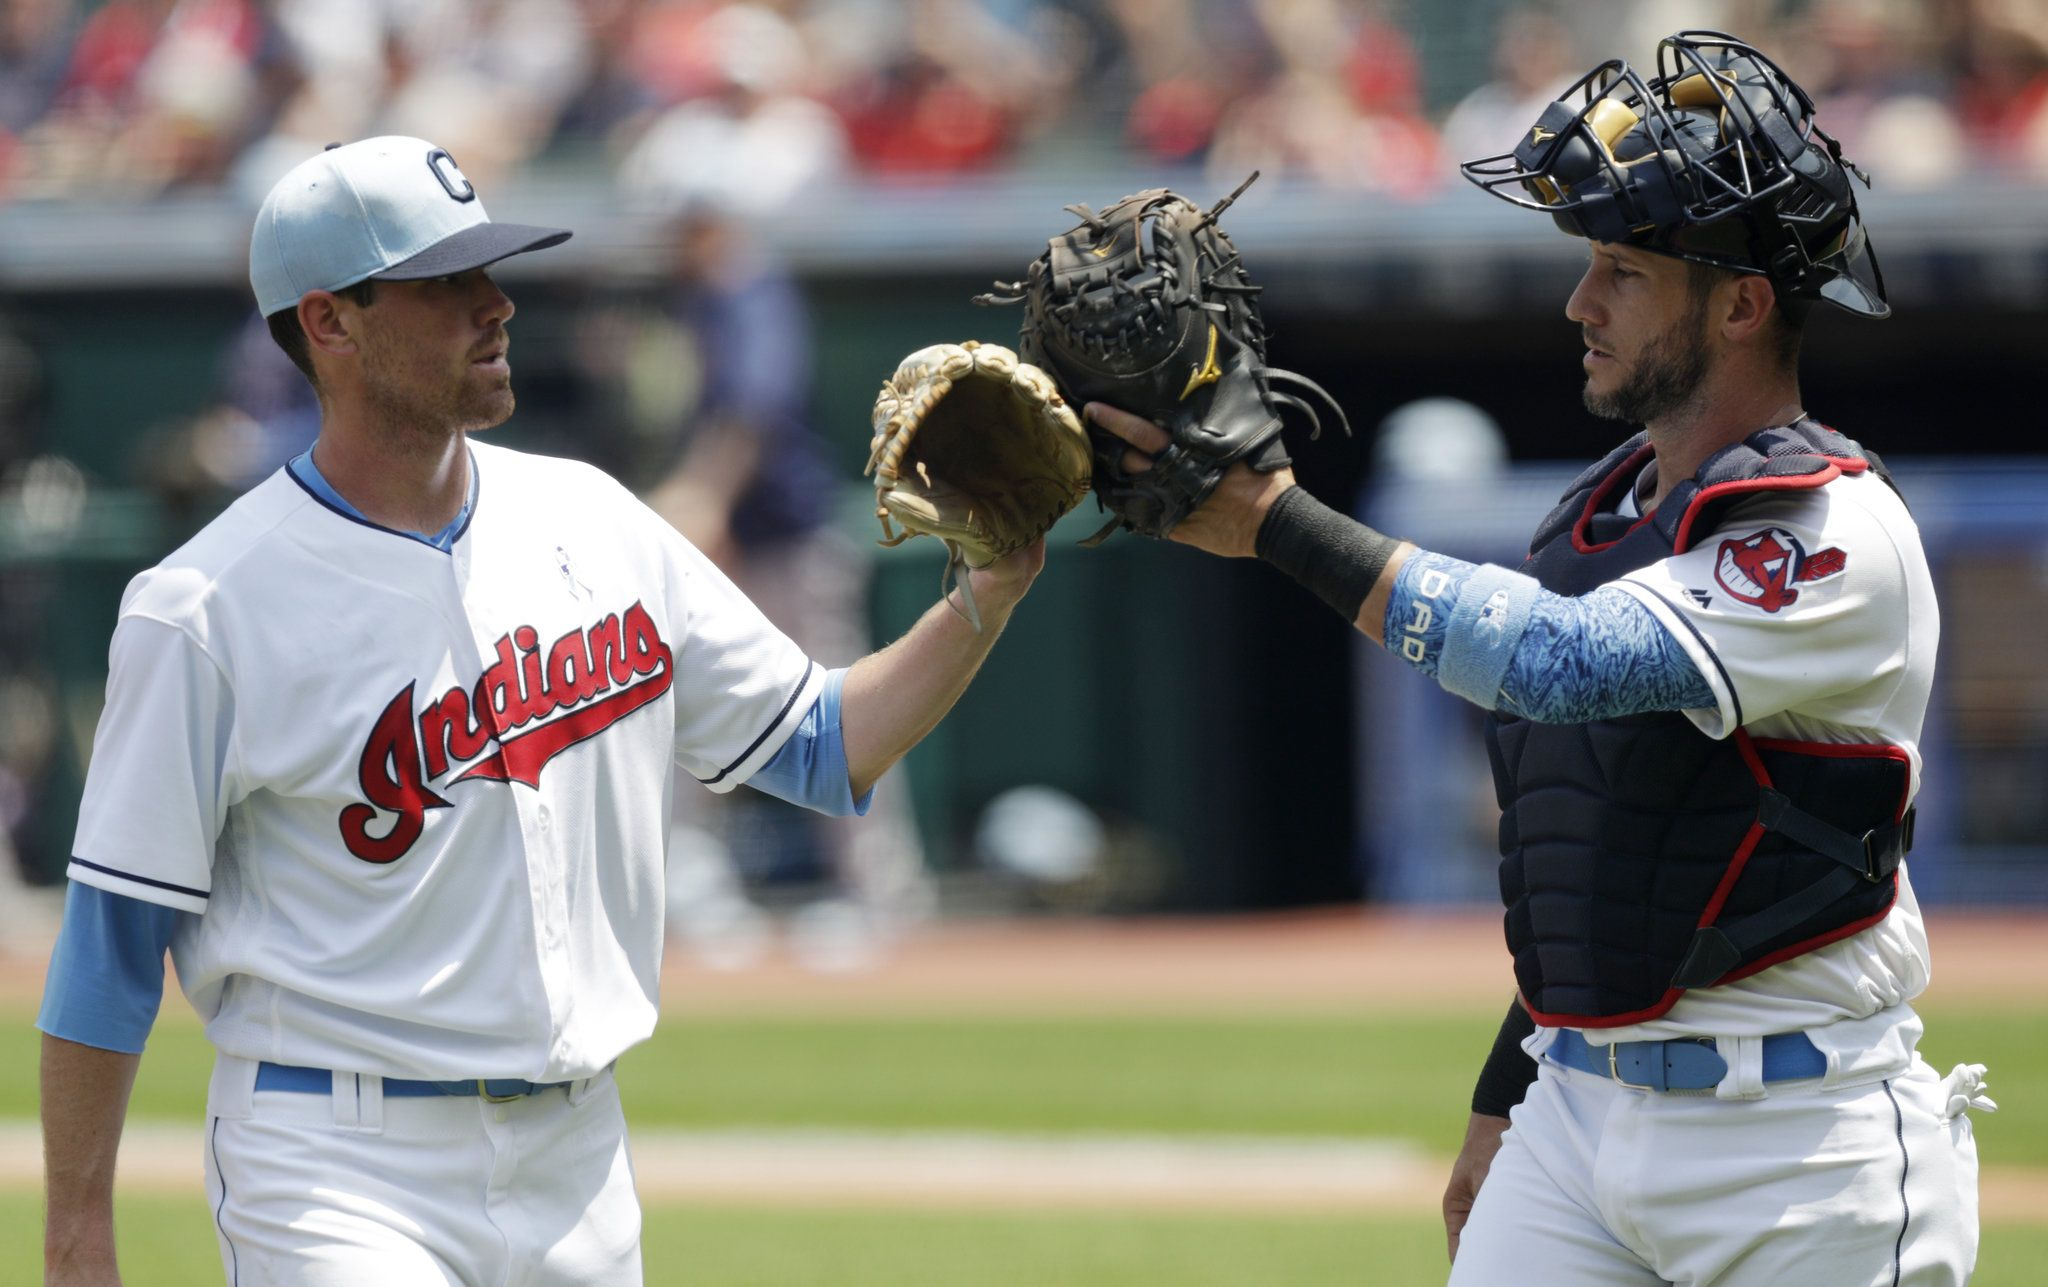 Indians Rookie Bieber Gets First Mlb Win 4 1 Vs Twins Minnesota Twins Cleveland Indians Minnesota Twins Baseball